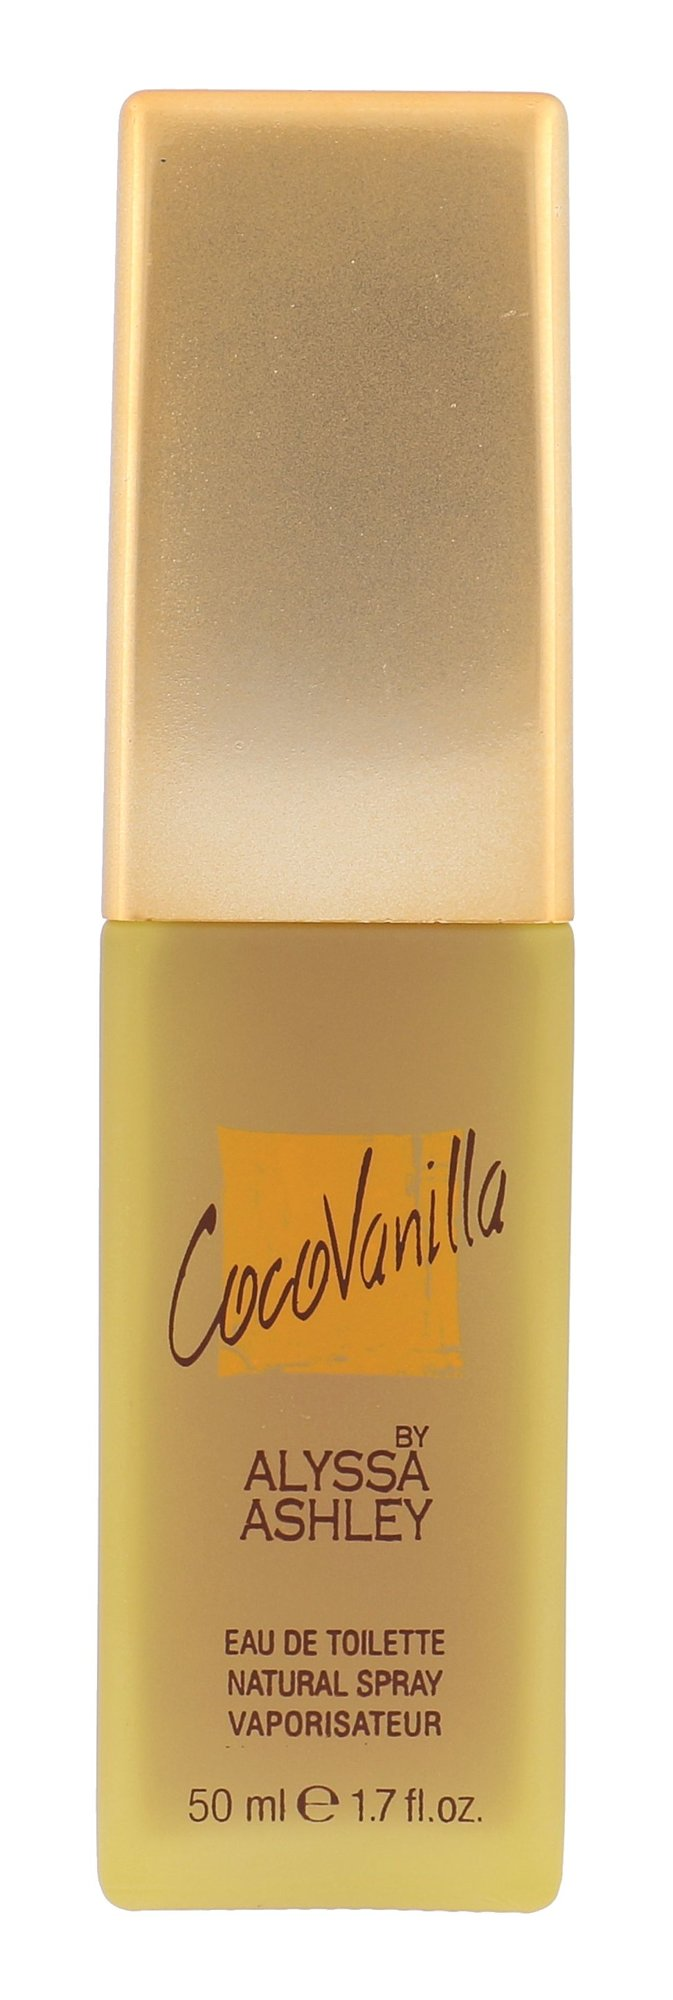 Alyssa Ashley Coco Vanilla EDT 50ml